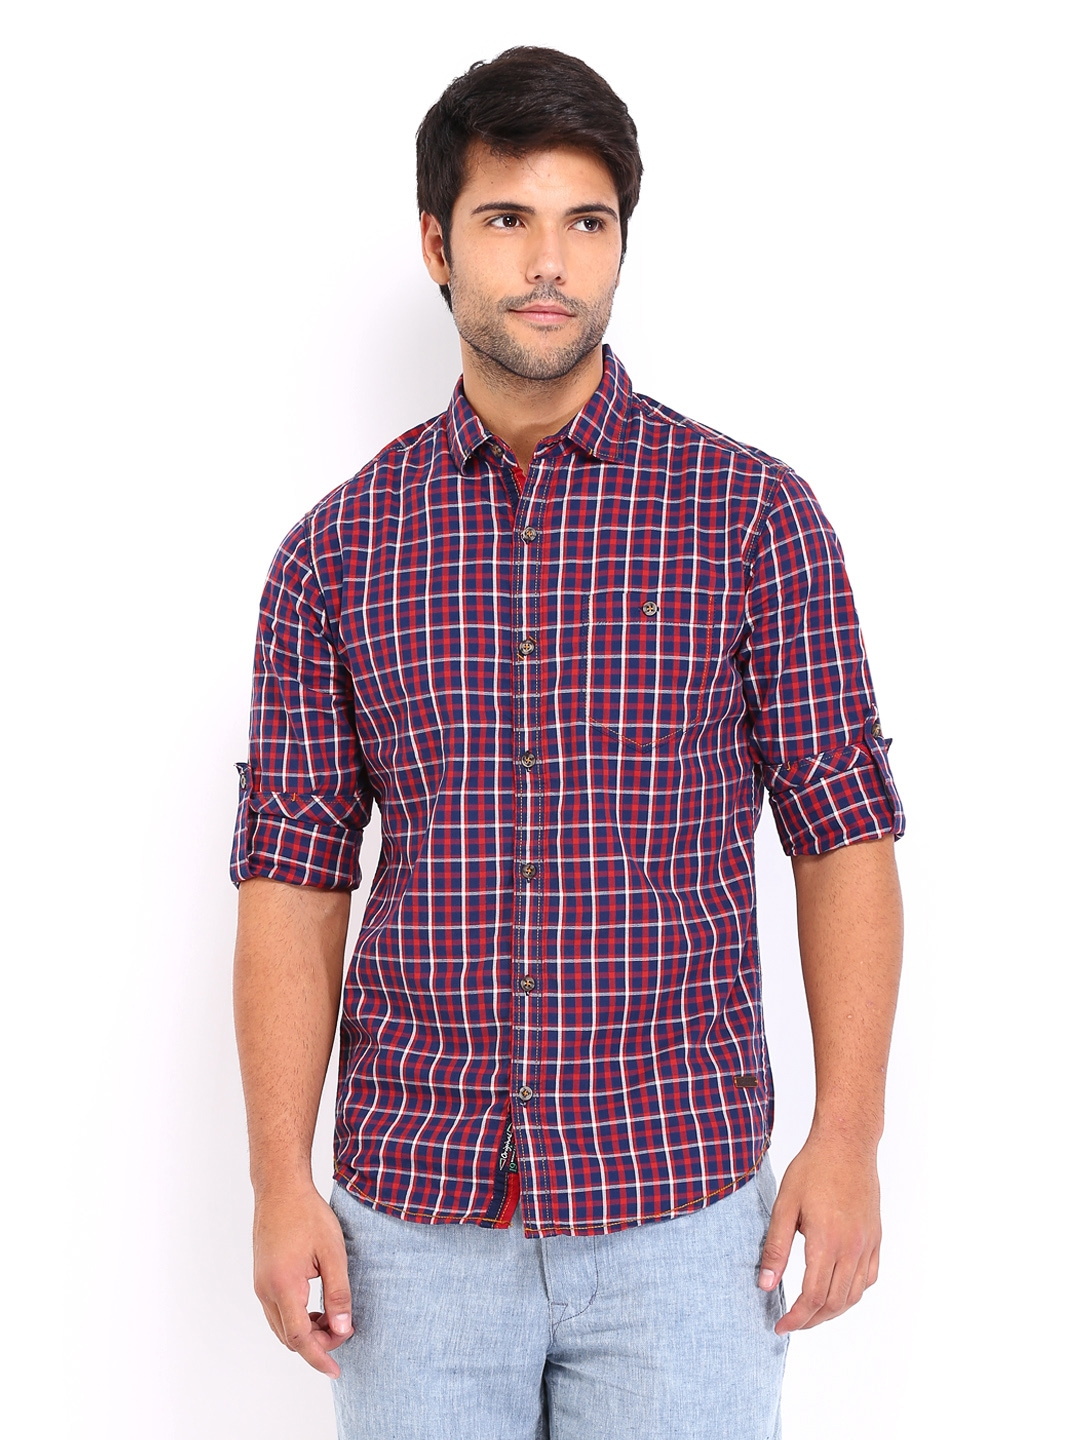 Mens casual shirts online shopping india